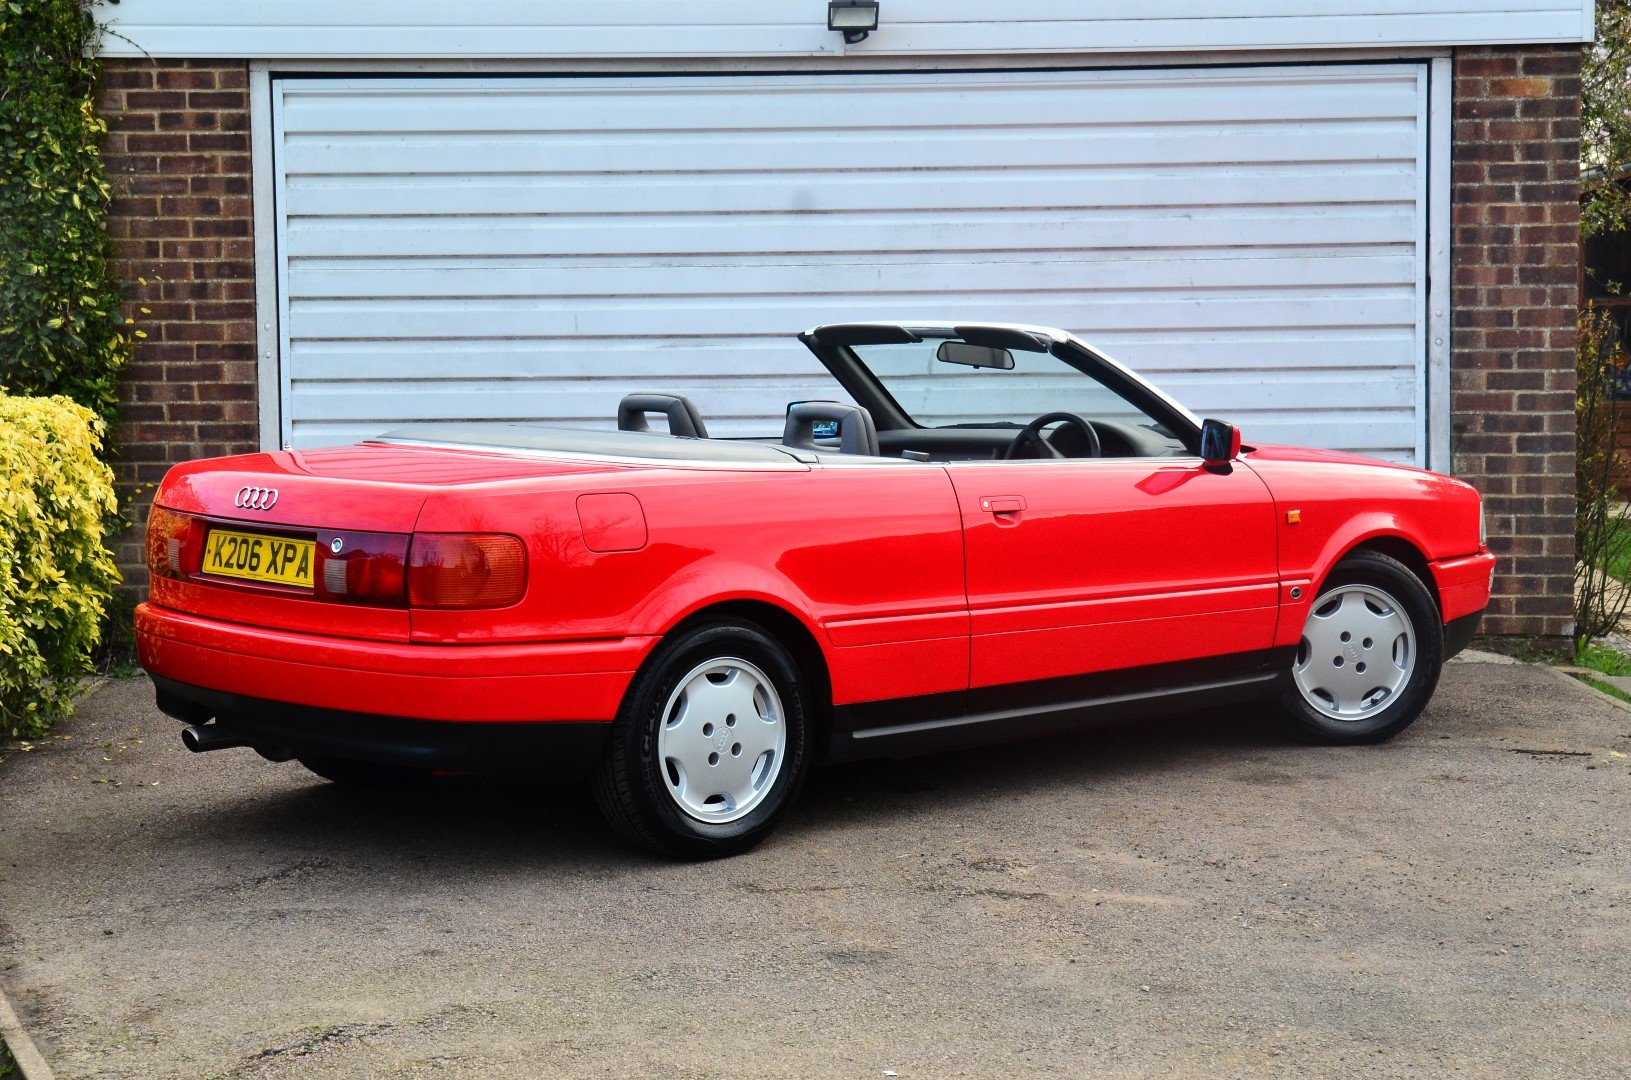 1993 Audi Cabriolet 2.3 Manual For Sale (picture 4 of 6)